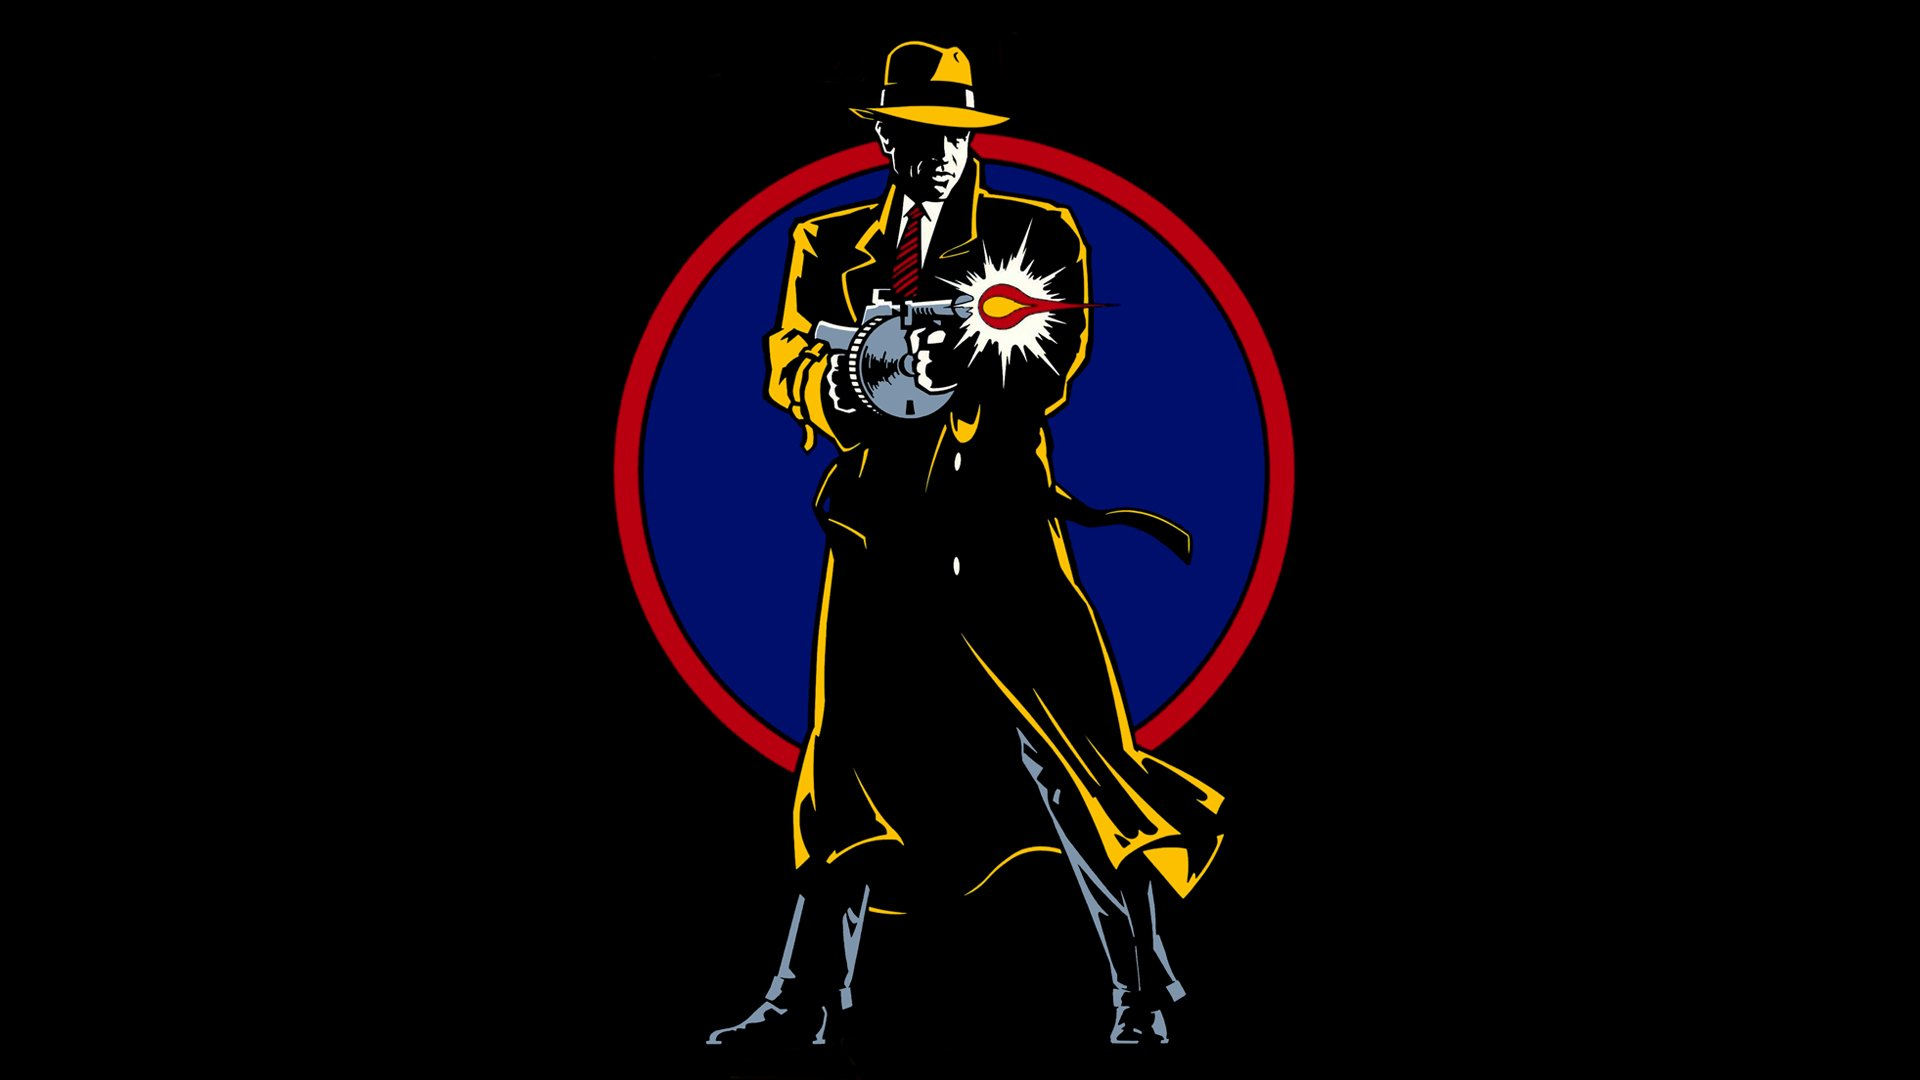 Dick tracy hd wallpaper background image 1920x1080 - Dick wallpaper ...